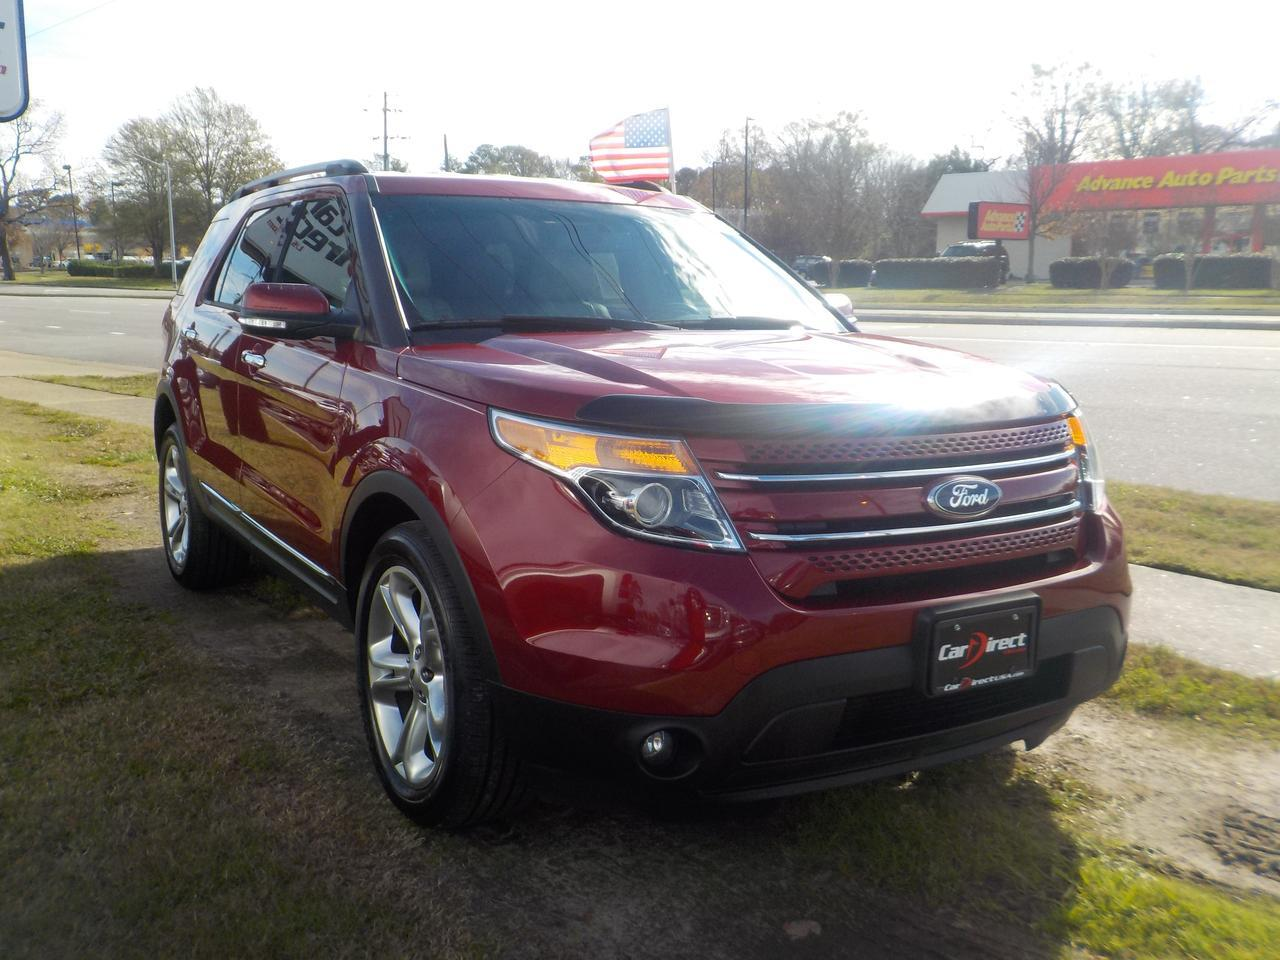 2013 FORD EXPLORER LIMITED 4X4, BLUETOOTH WIRELESS, LEATHER, BACKUP CAMERA, HEATED SEATS, VERY CLEAN, ONLY 72K MILES! Virginia Beach VA